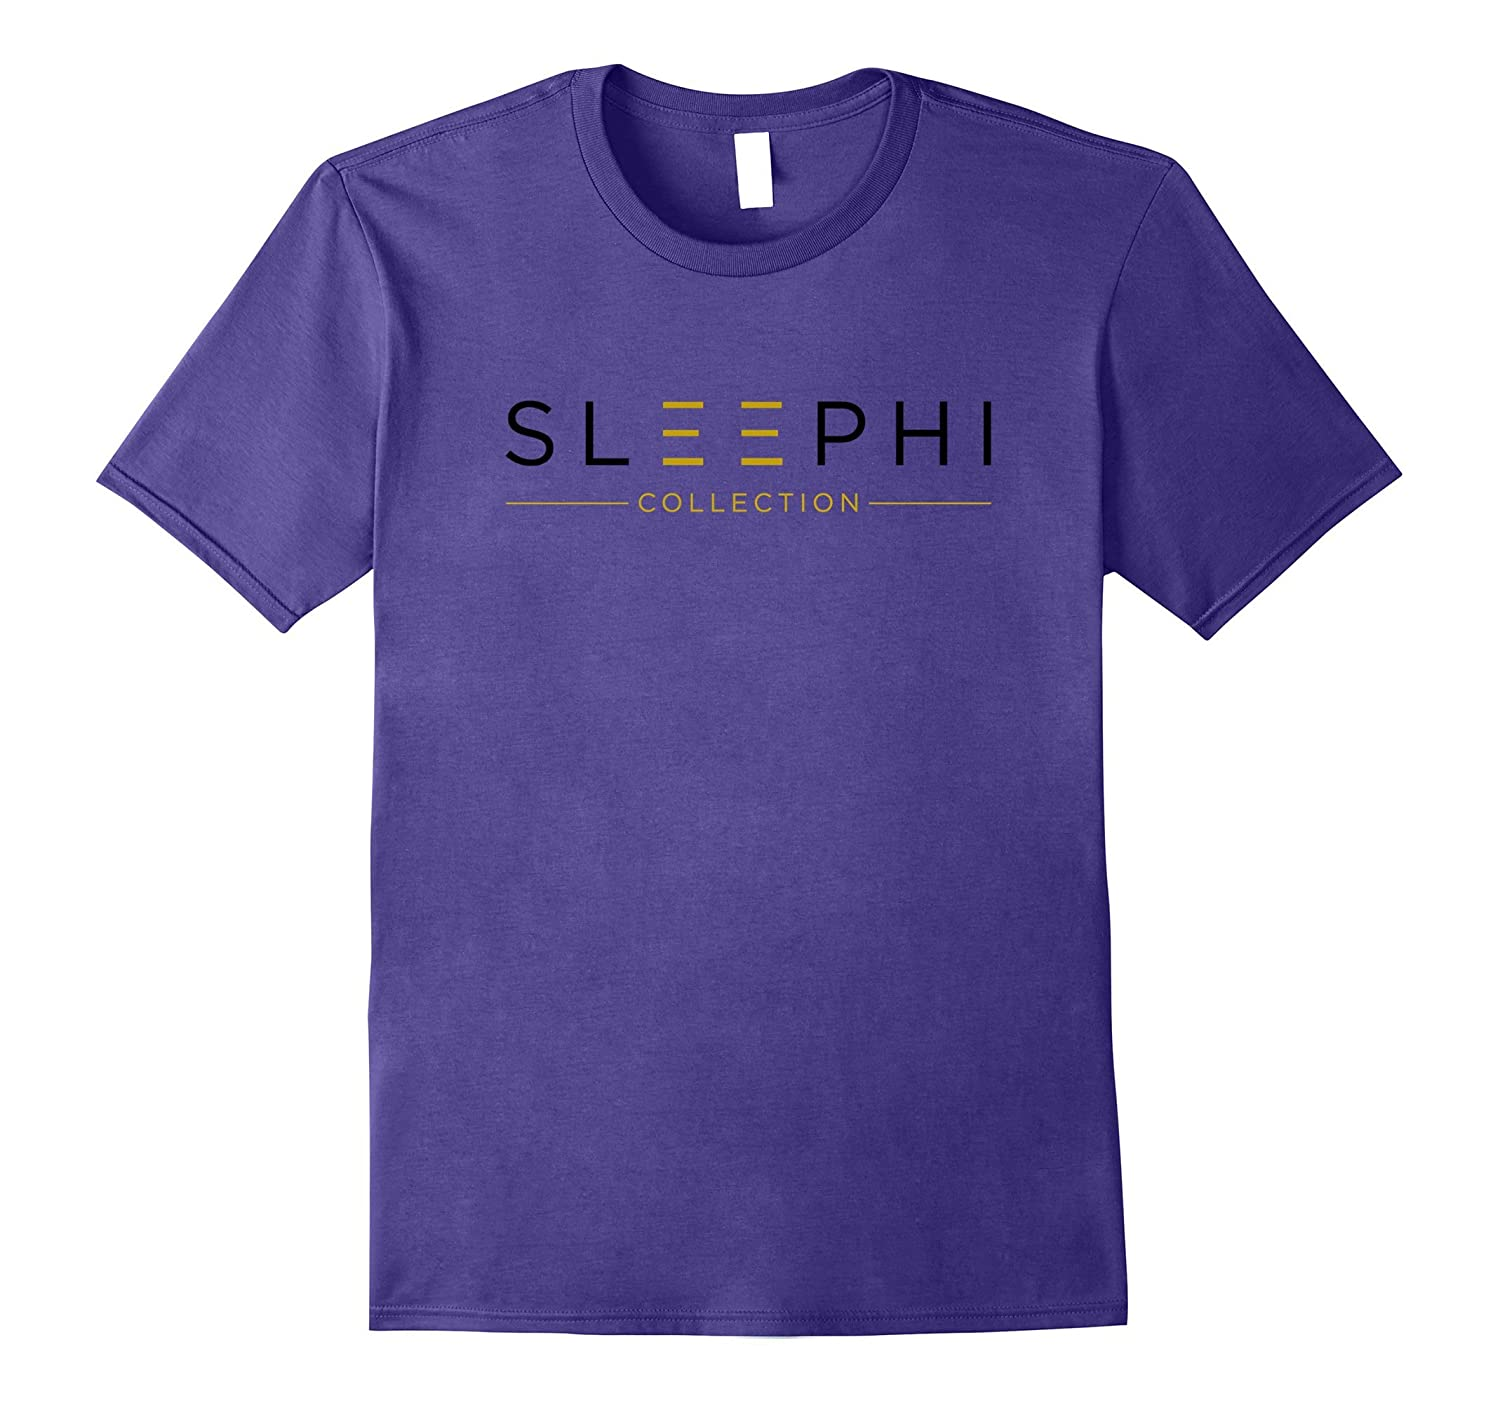 #1 SLEEPHI T-Shirt   Branded 'T' from a growing Startup-TH